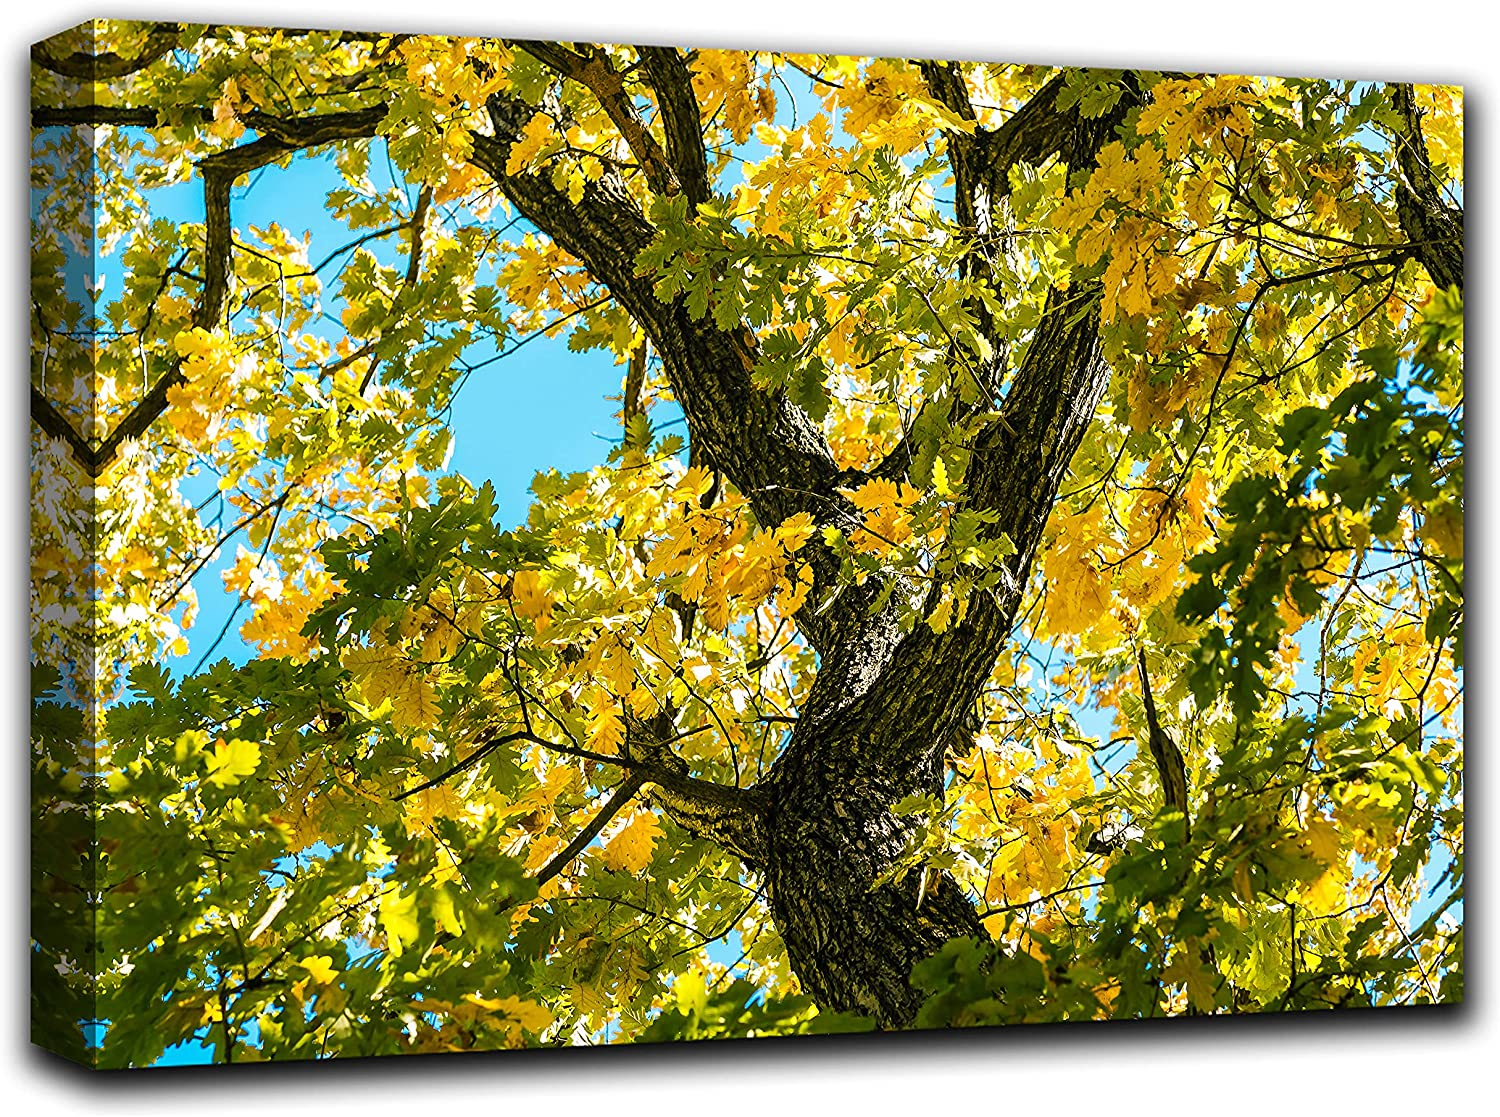 Oak Tree Branches Wall Art Decor Picture Painting Poster Print on Canvas Panels Pieces - Nature Theme Wall Decoration Set - Nature Sky Trunk Wall Picture for Living Room Bedroom 33 by 50 in